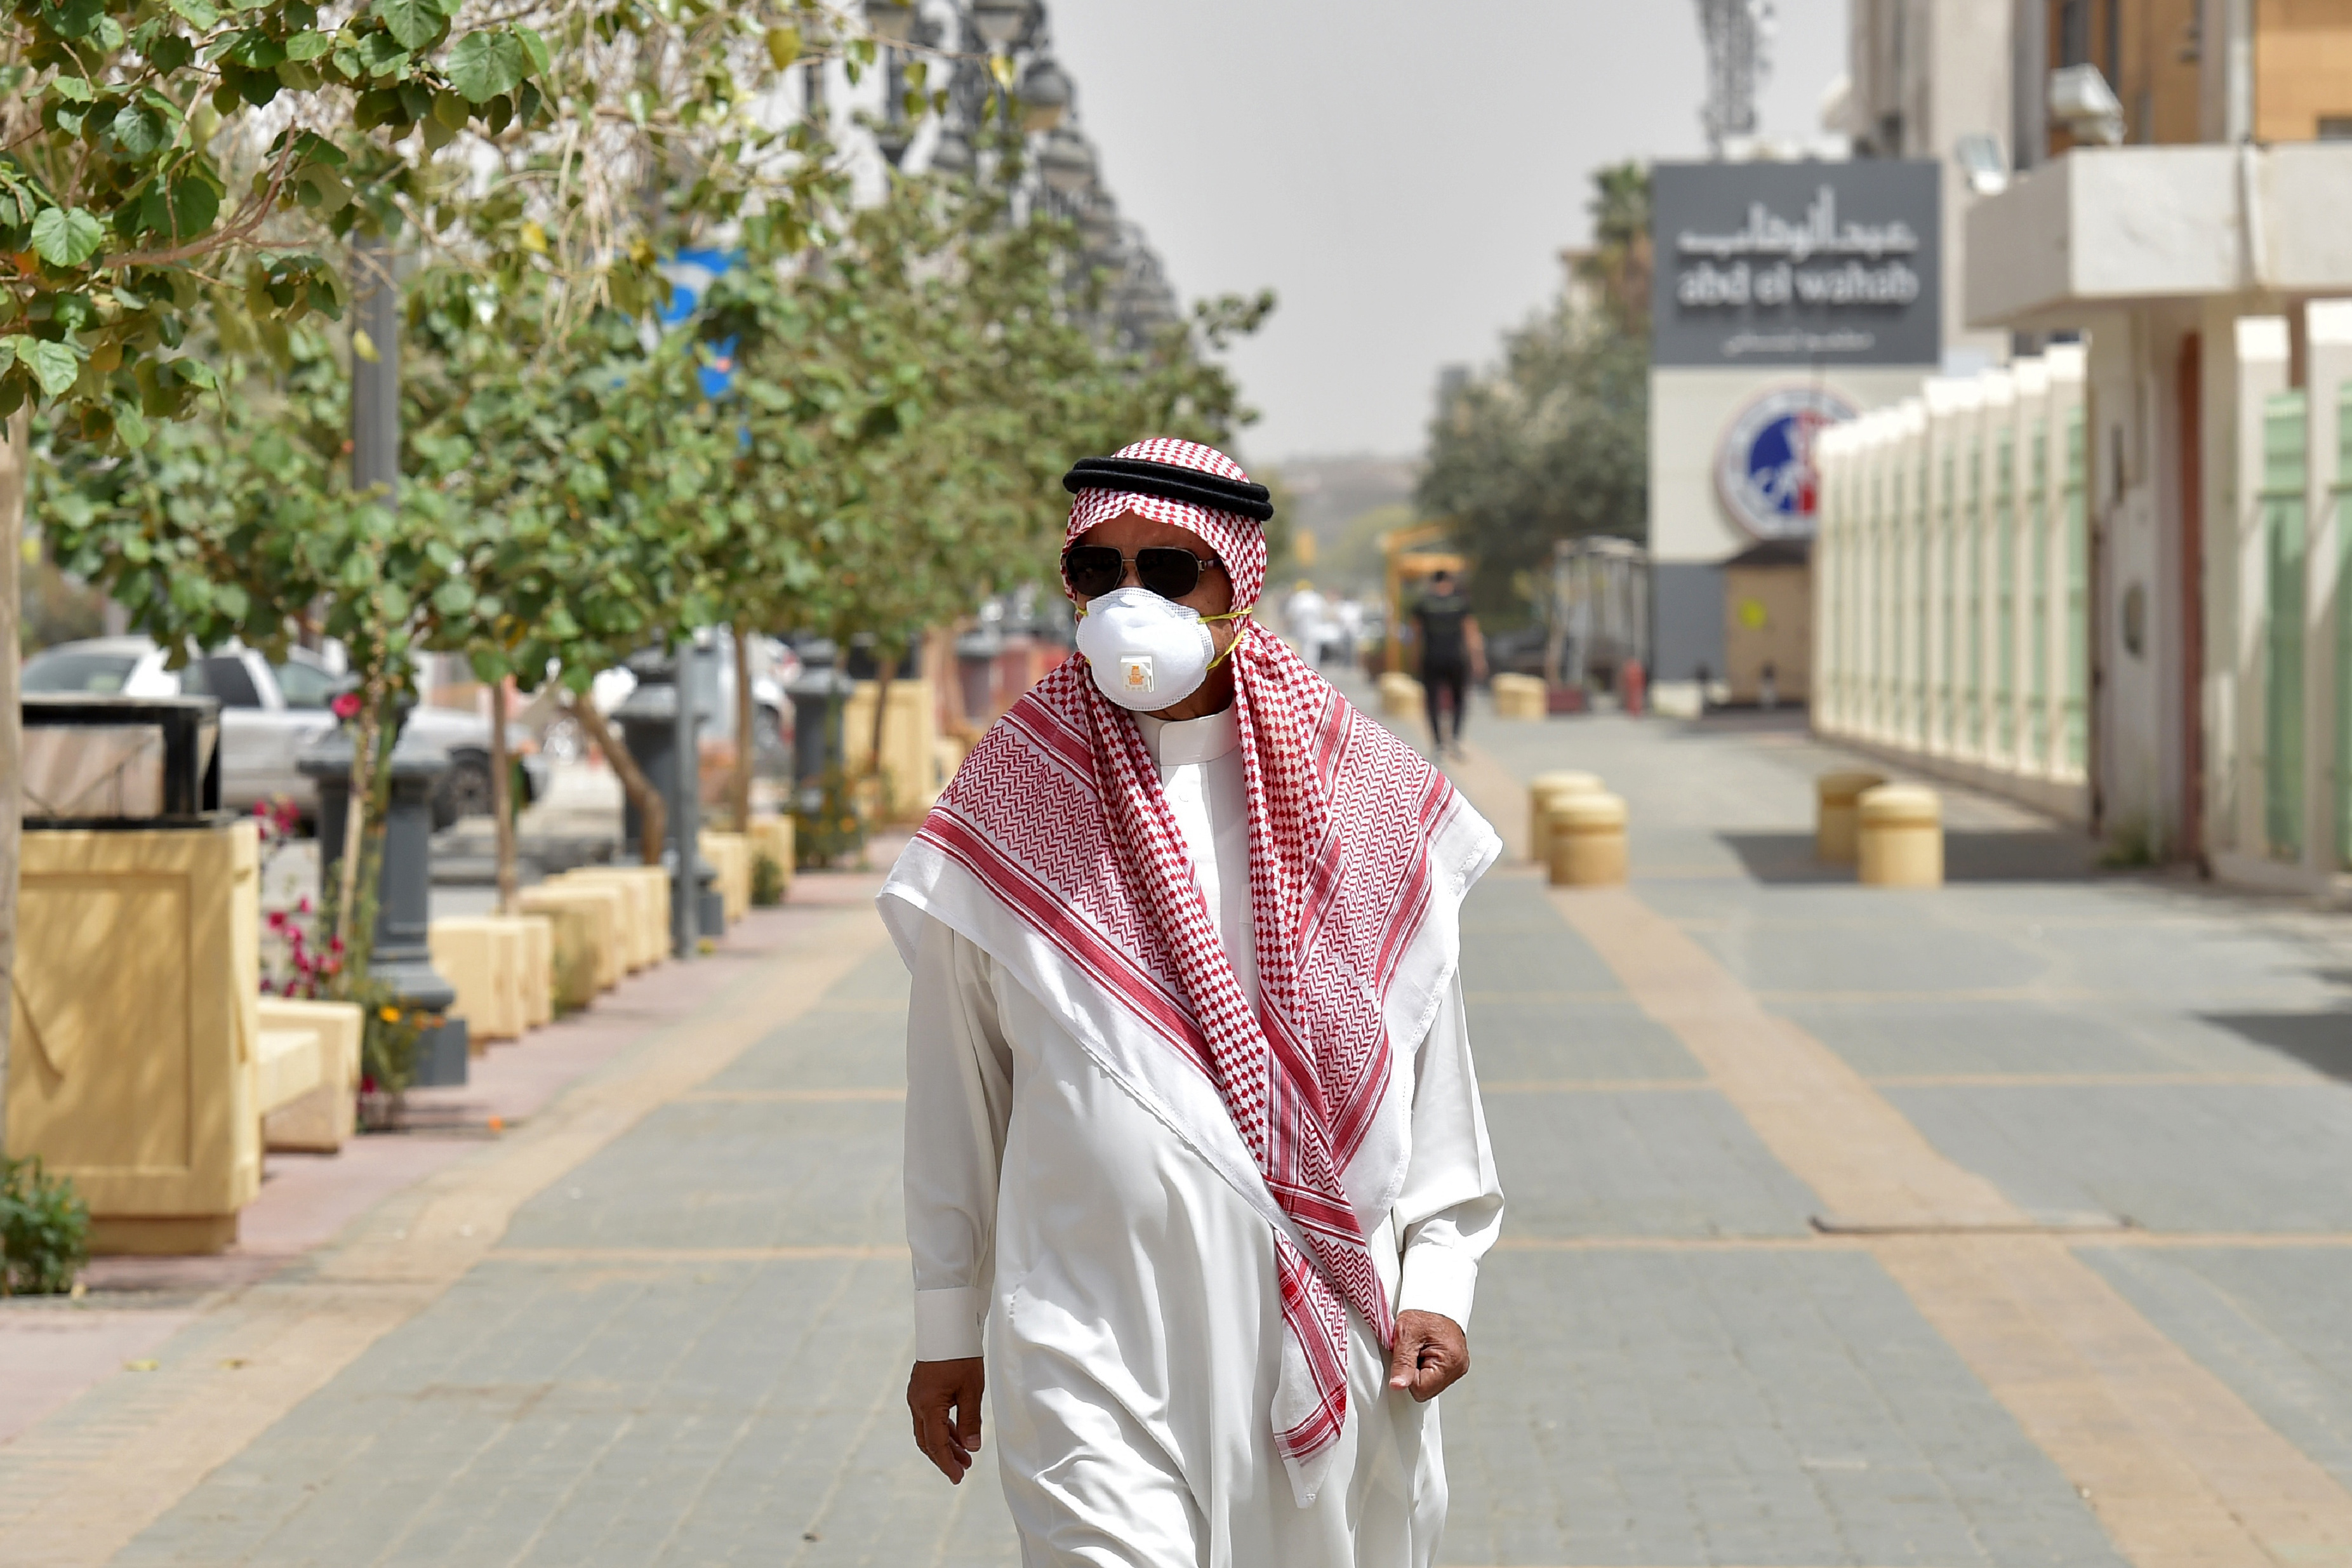 A Saudi man, wearing a protective mask as a precaution against COVID-19 coronavirus disease, walks along Tahlia street in the centre of the capital Riyadh on March 15, 2020. (Photo by FAYEZ NURELDINE / AFP) (Photo by FAYEZ NURELDINE/AFP via Getty Images)